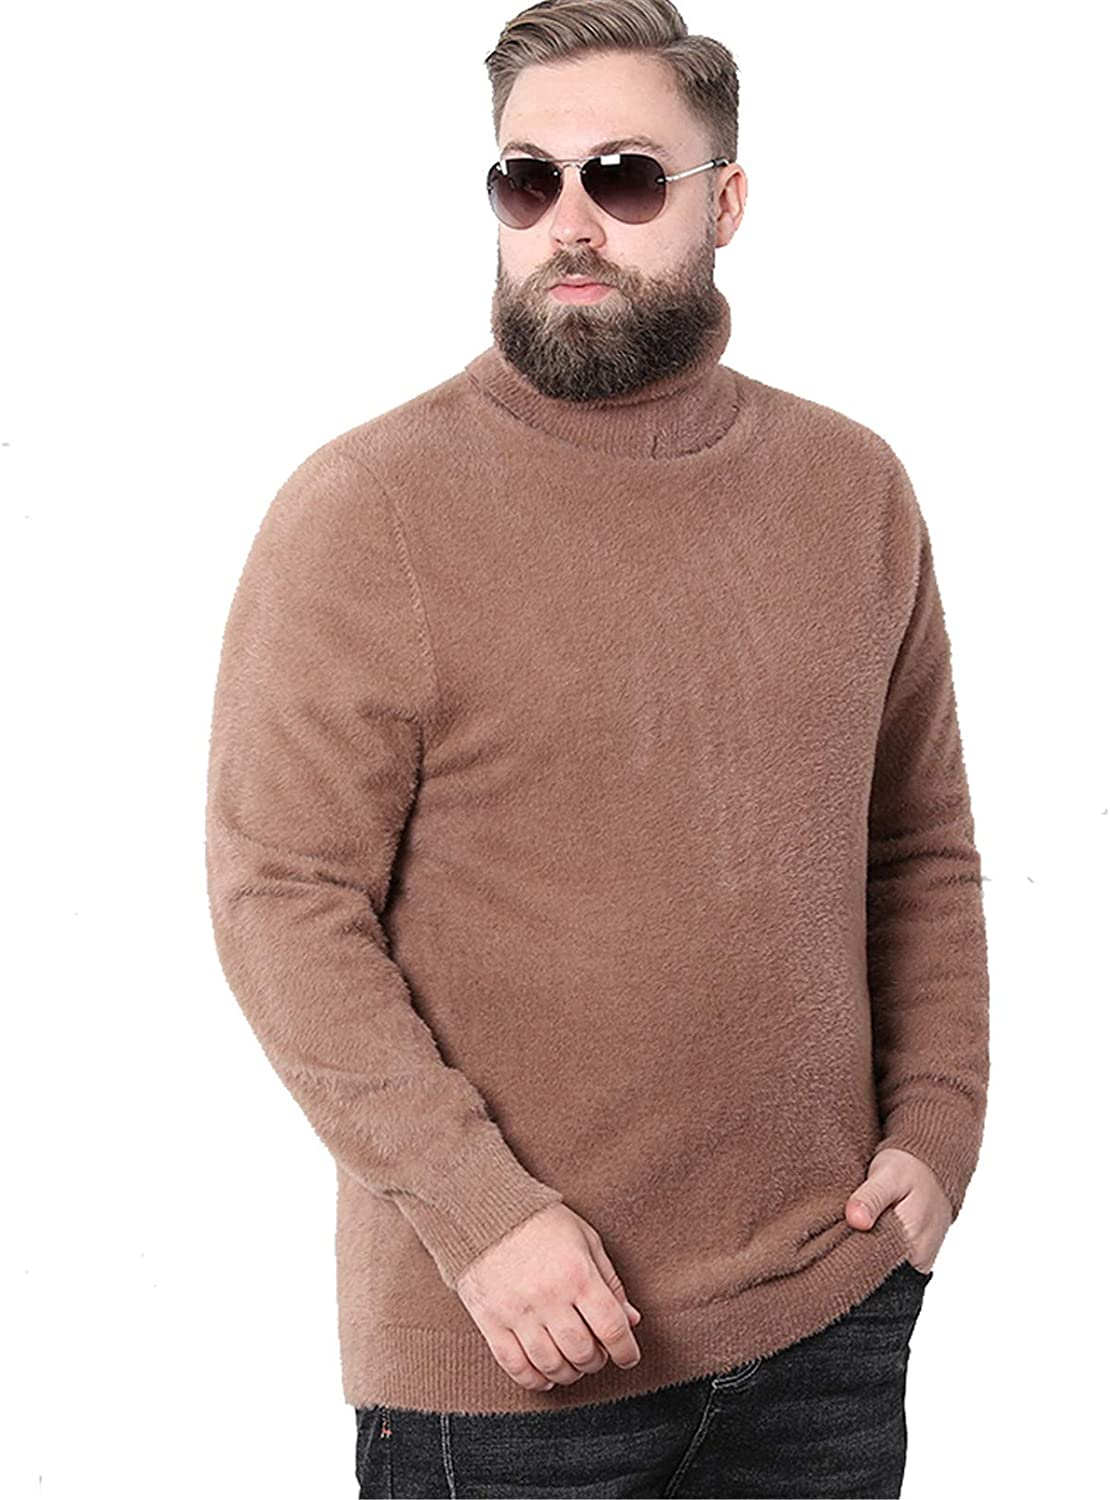 Men's Knitted Pullover Jumpers Thick Sweater Soft Highneck Long Sleeve Fall Winter Cardigans Warm Knitwear Outwear,Brown,L